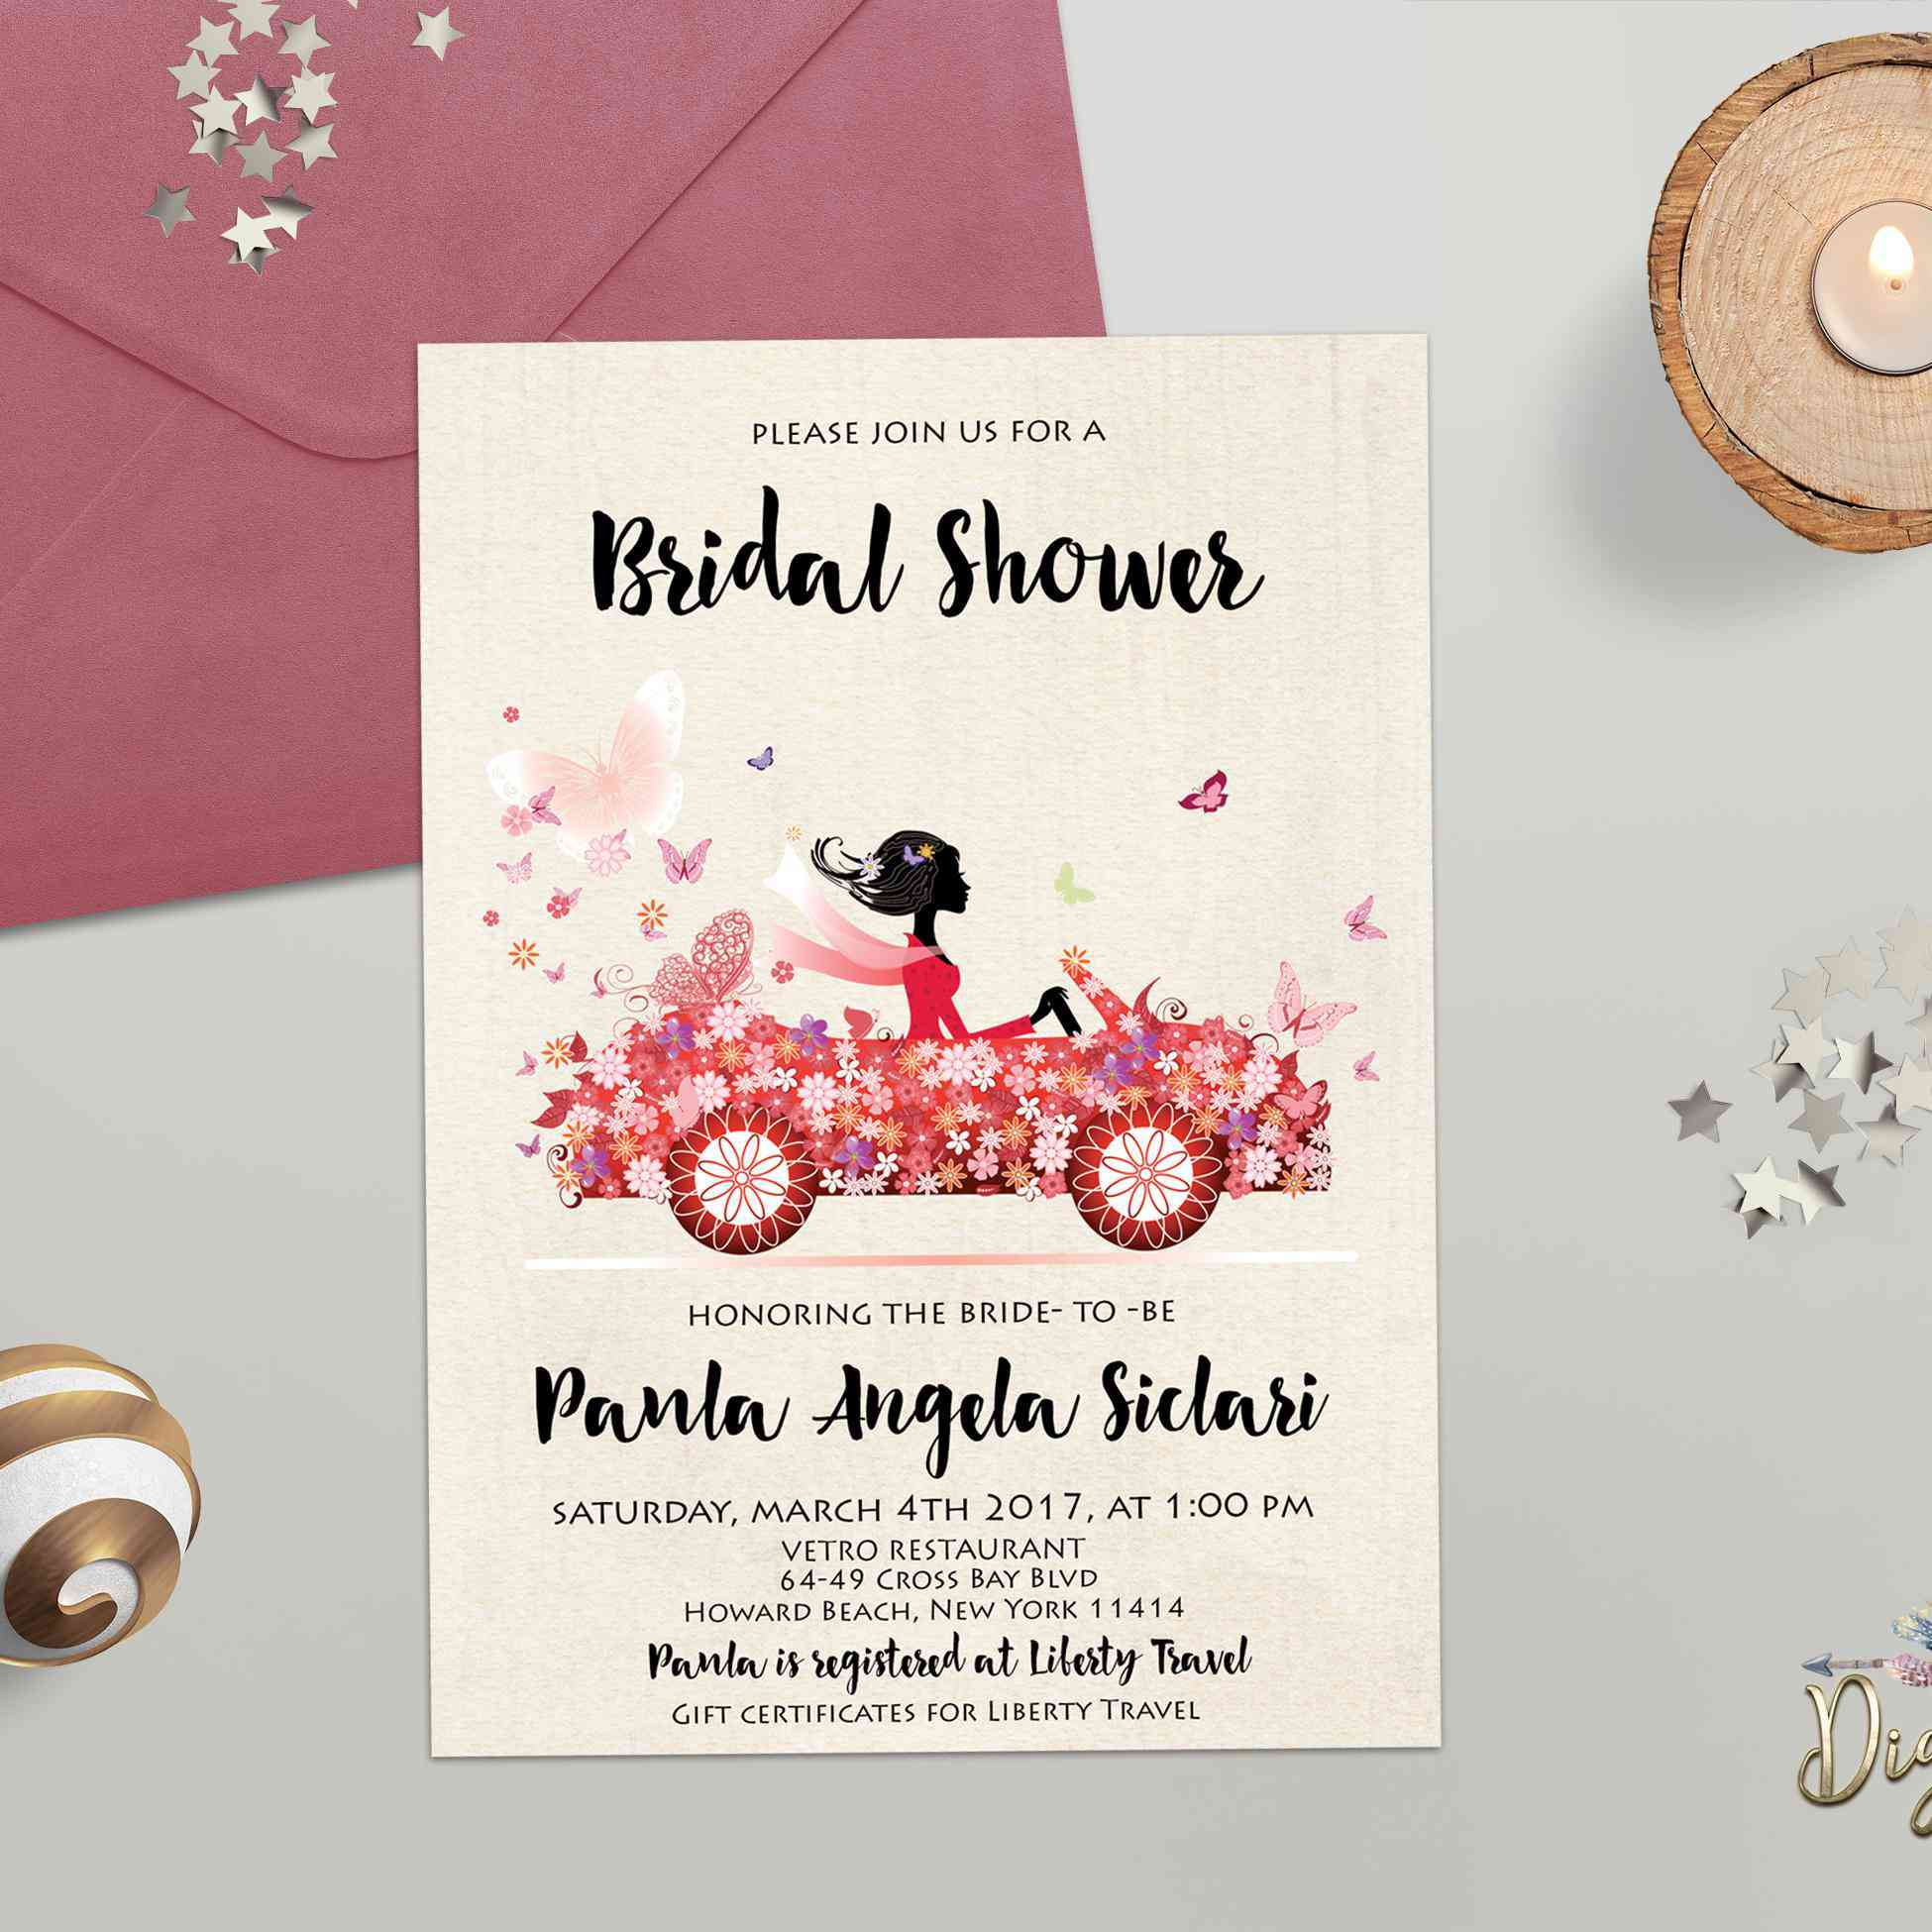 Pre Wedding Party Ideas: Bridal Shower Etiquette 101: Everything You Need To Know